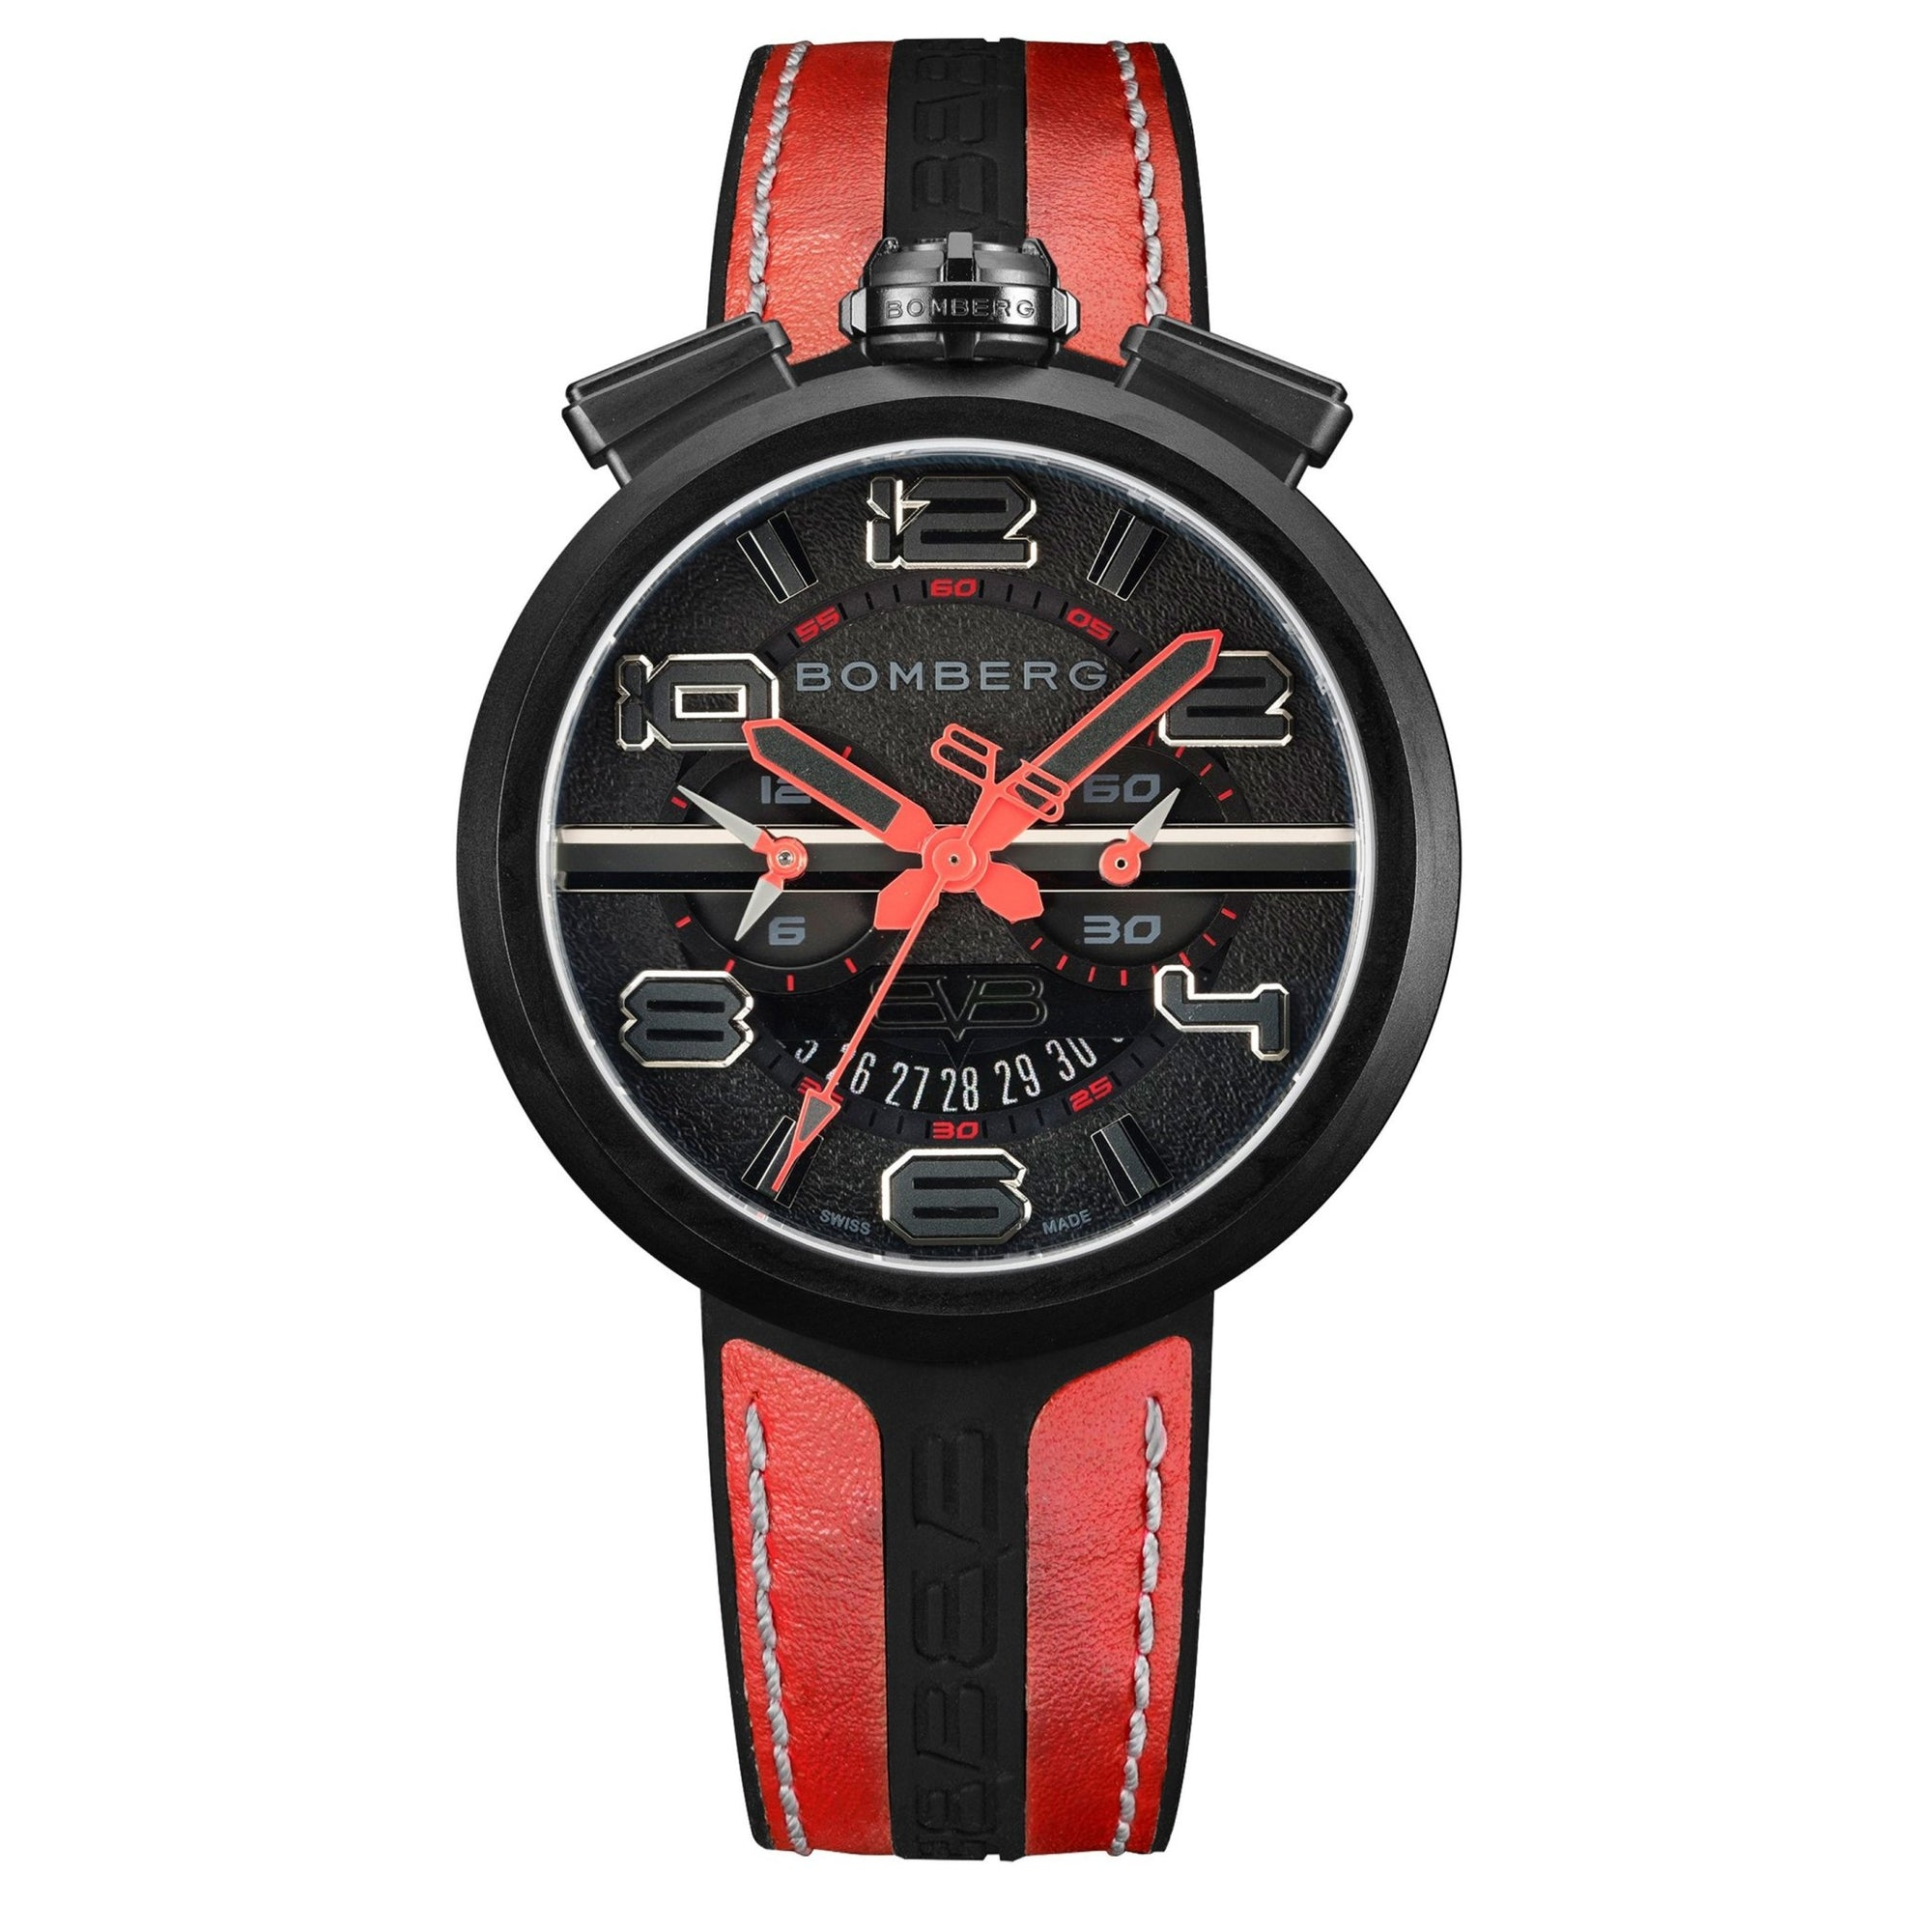 Bomberg 1968 Chronograph Black PVD - Watches & Crystals